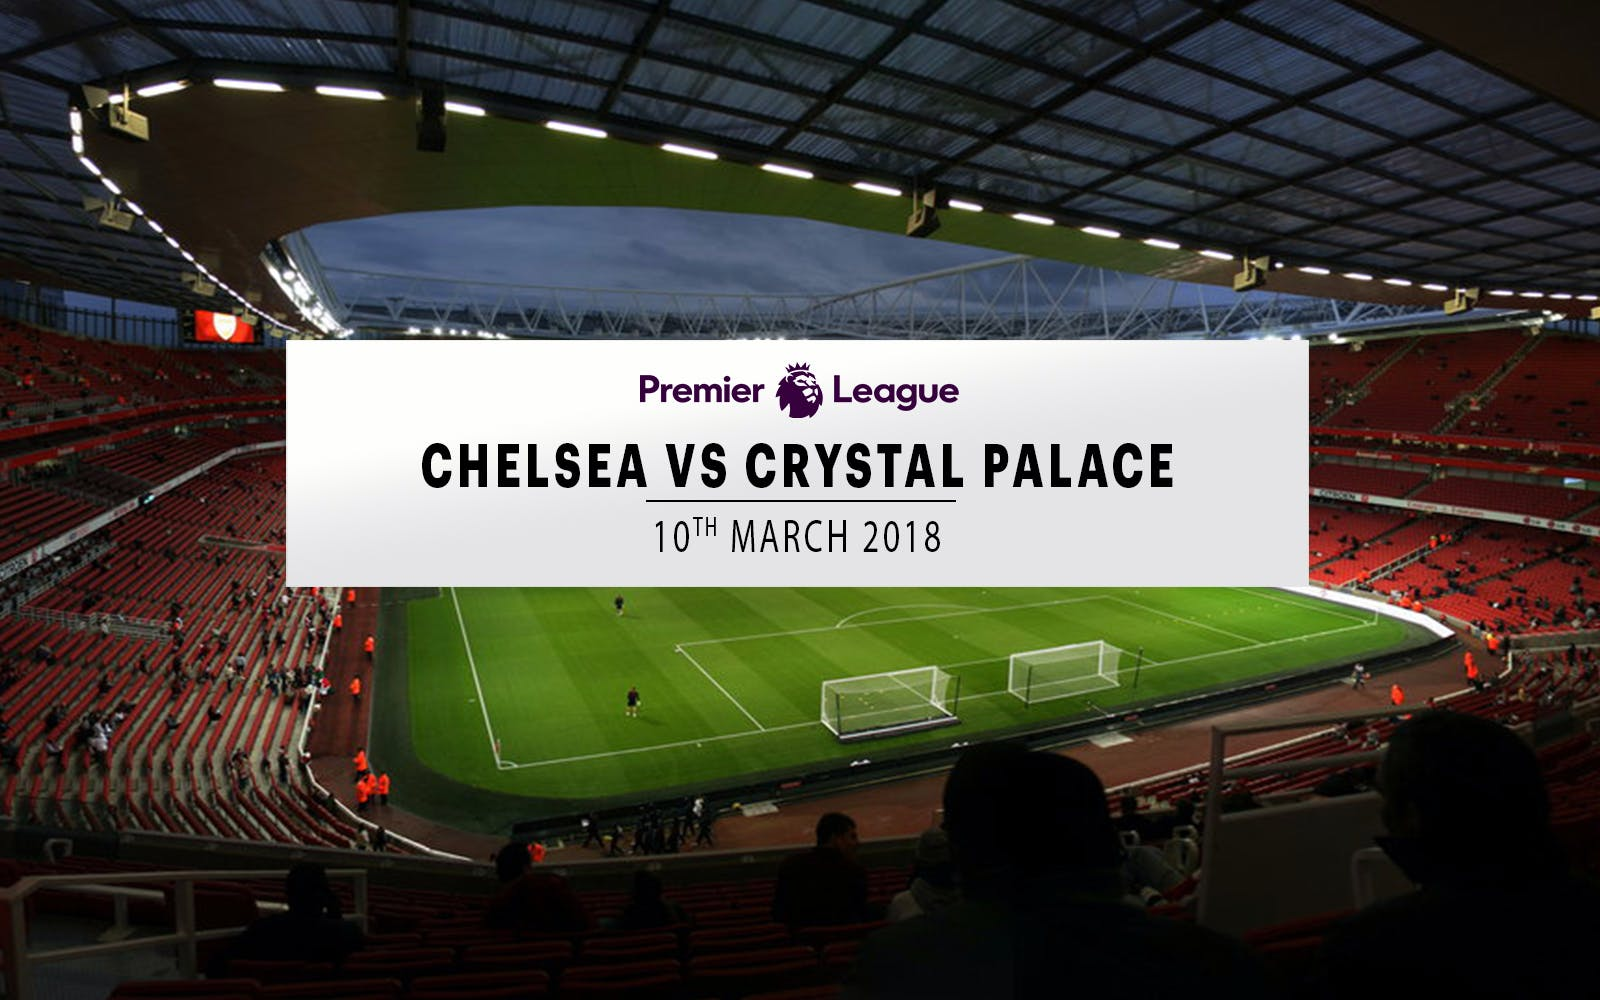 chelsea vs crystal palace - 10th march 2018-1